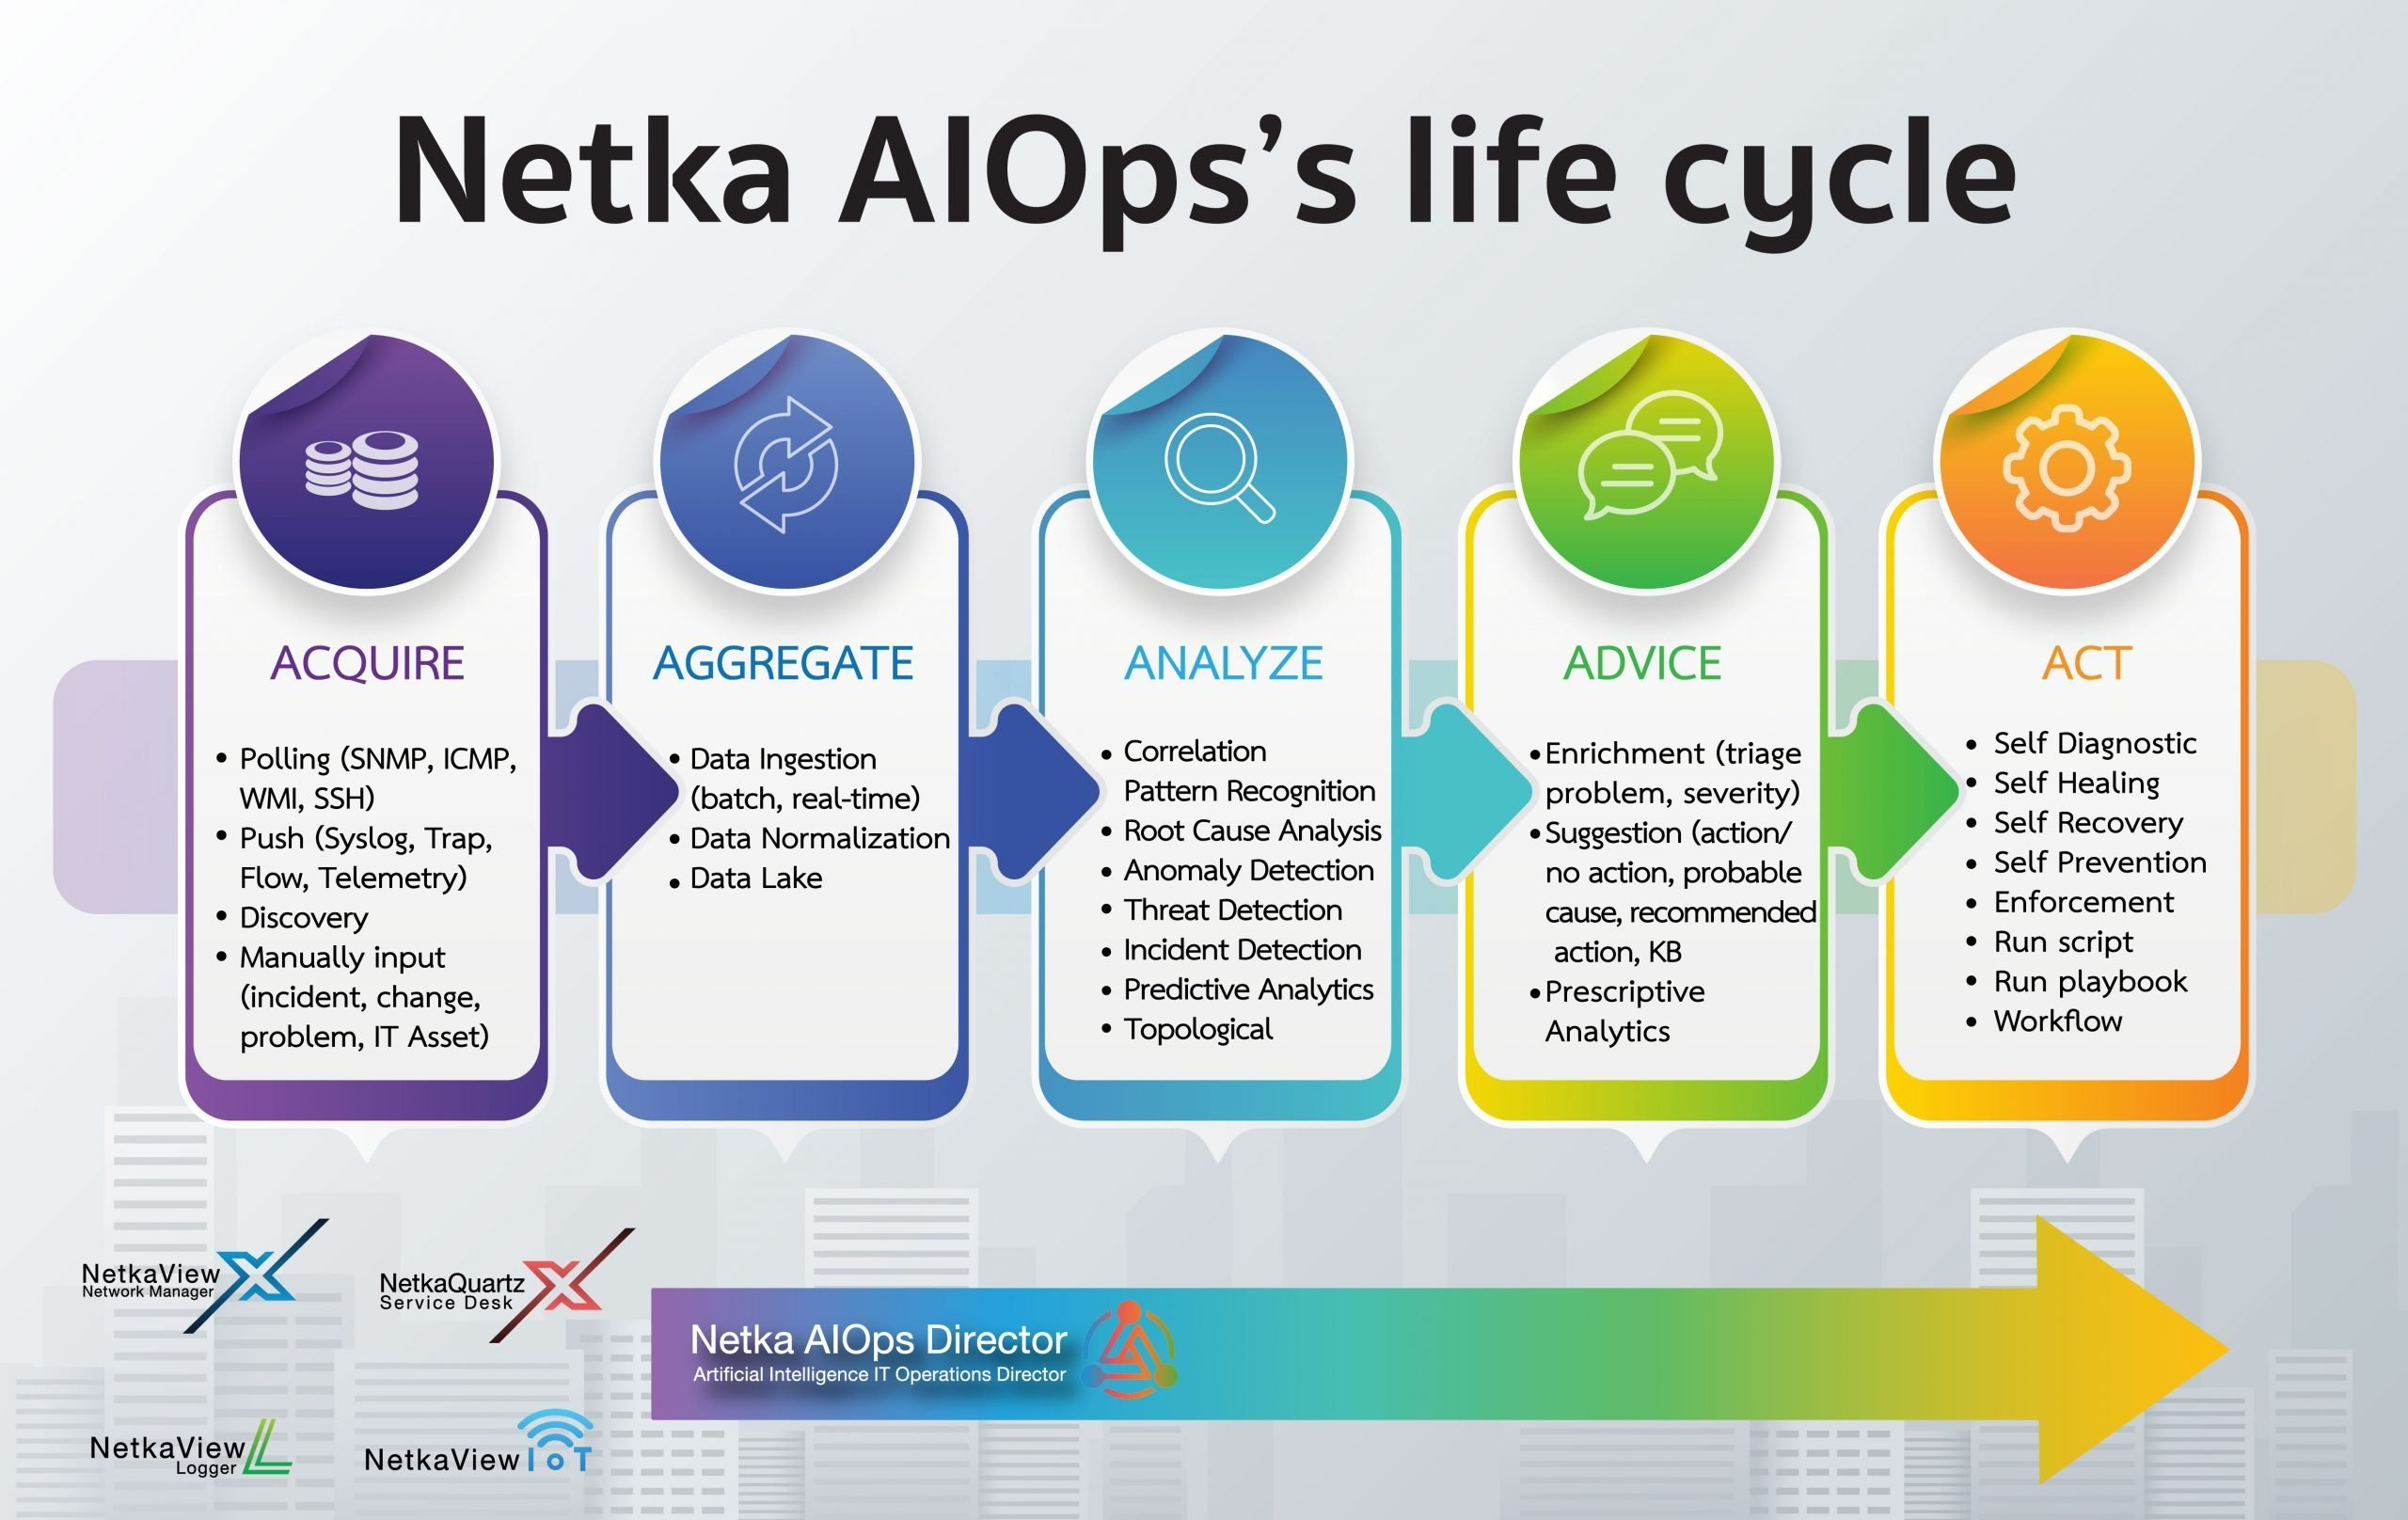 AIOps's life cycle